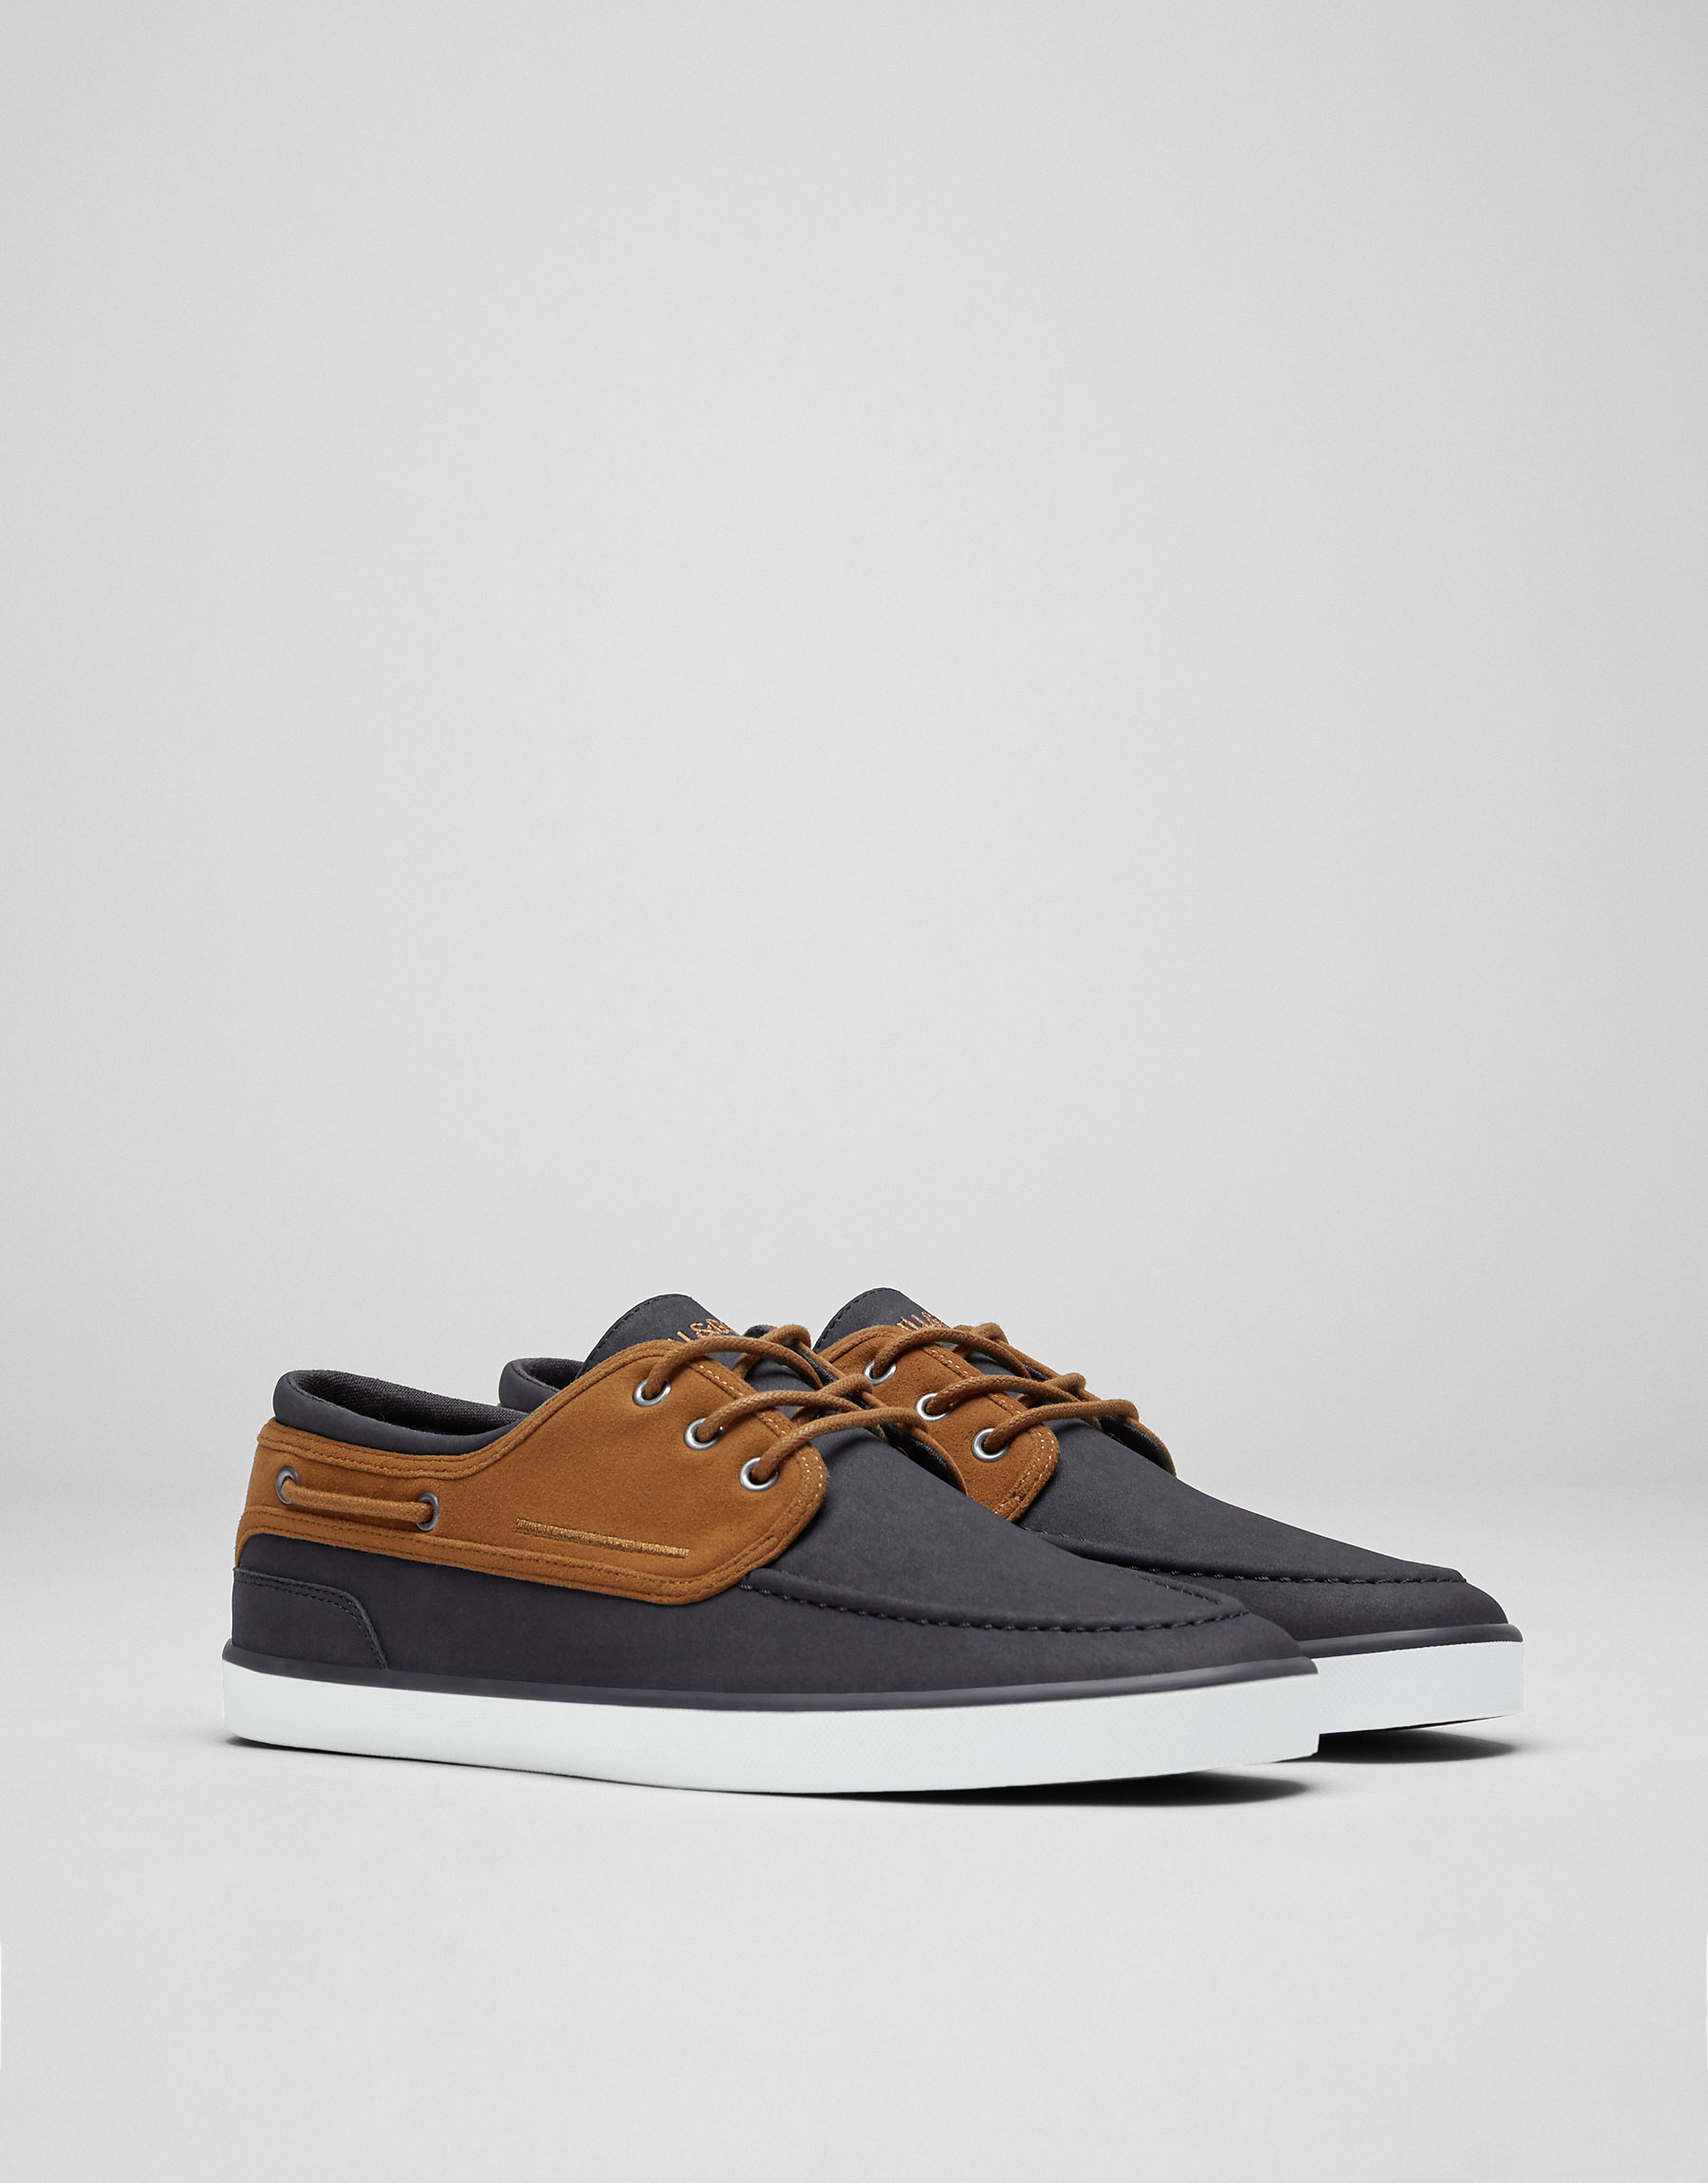 Deck shoes plimsolls